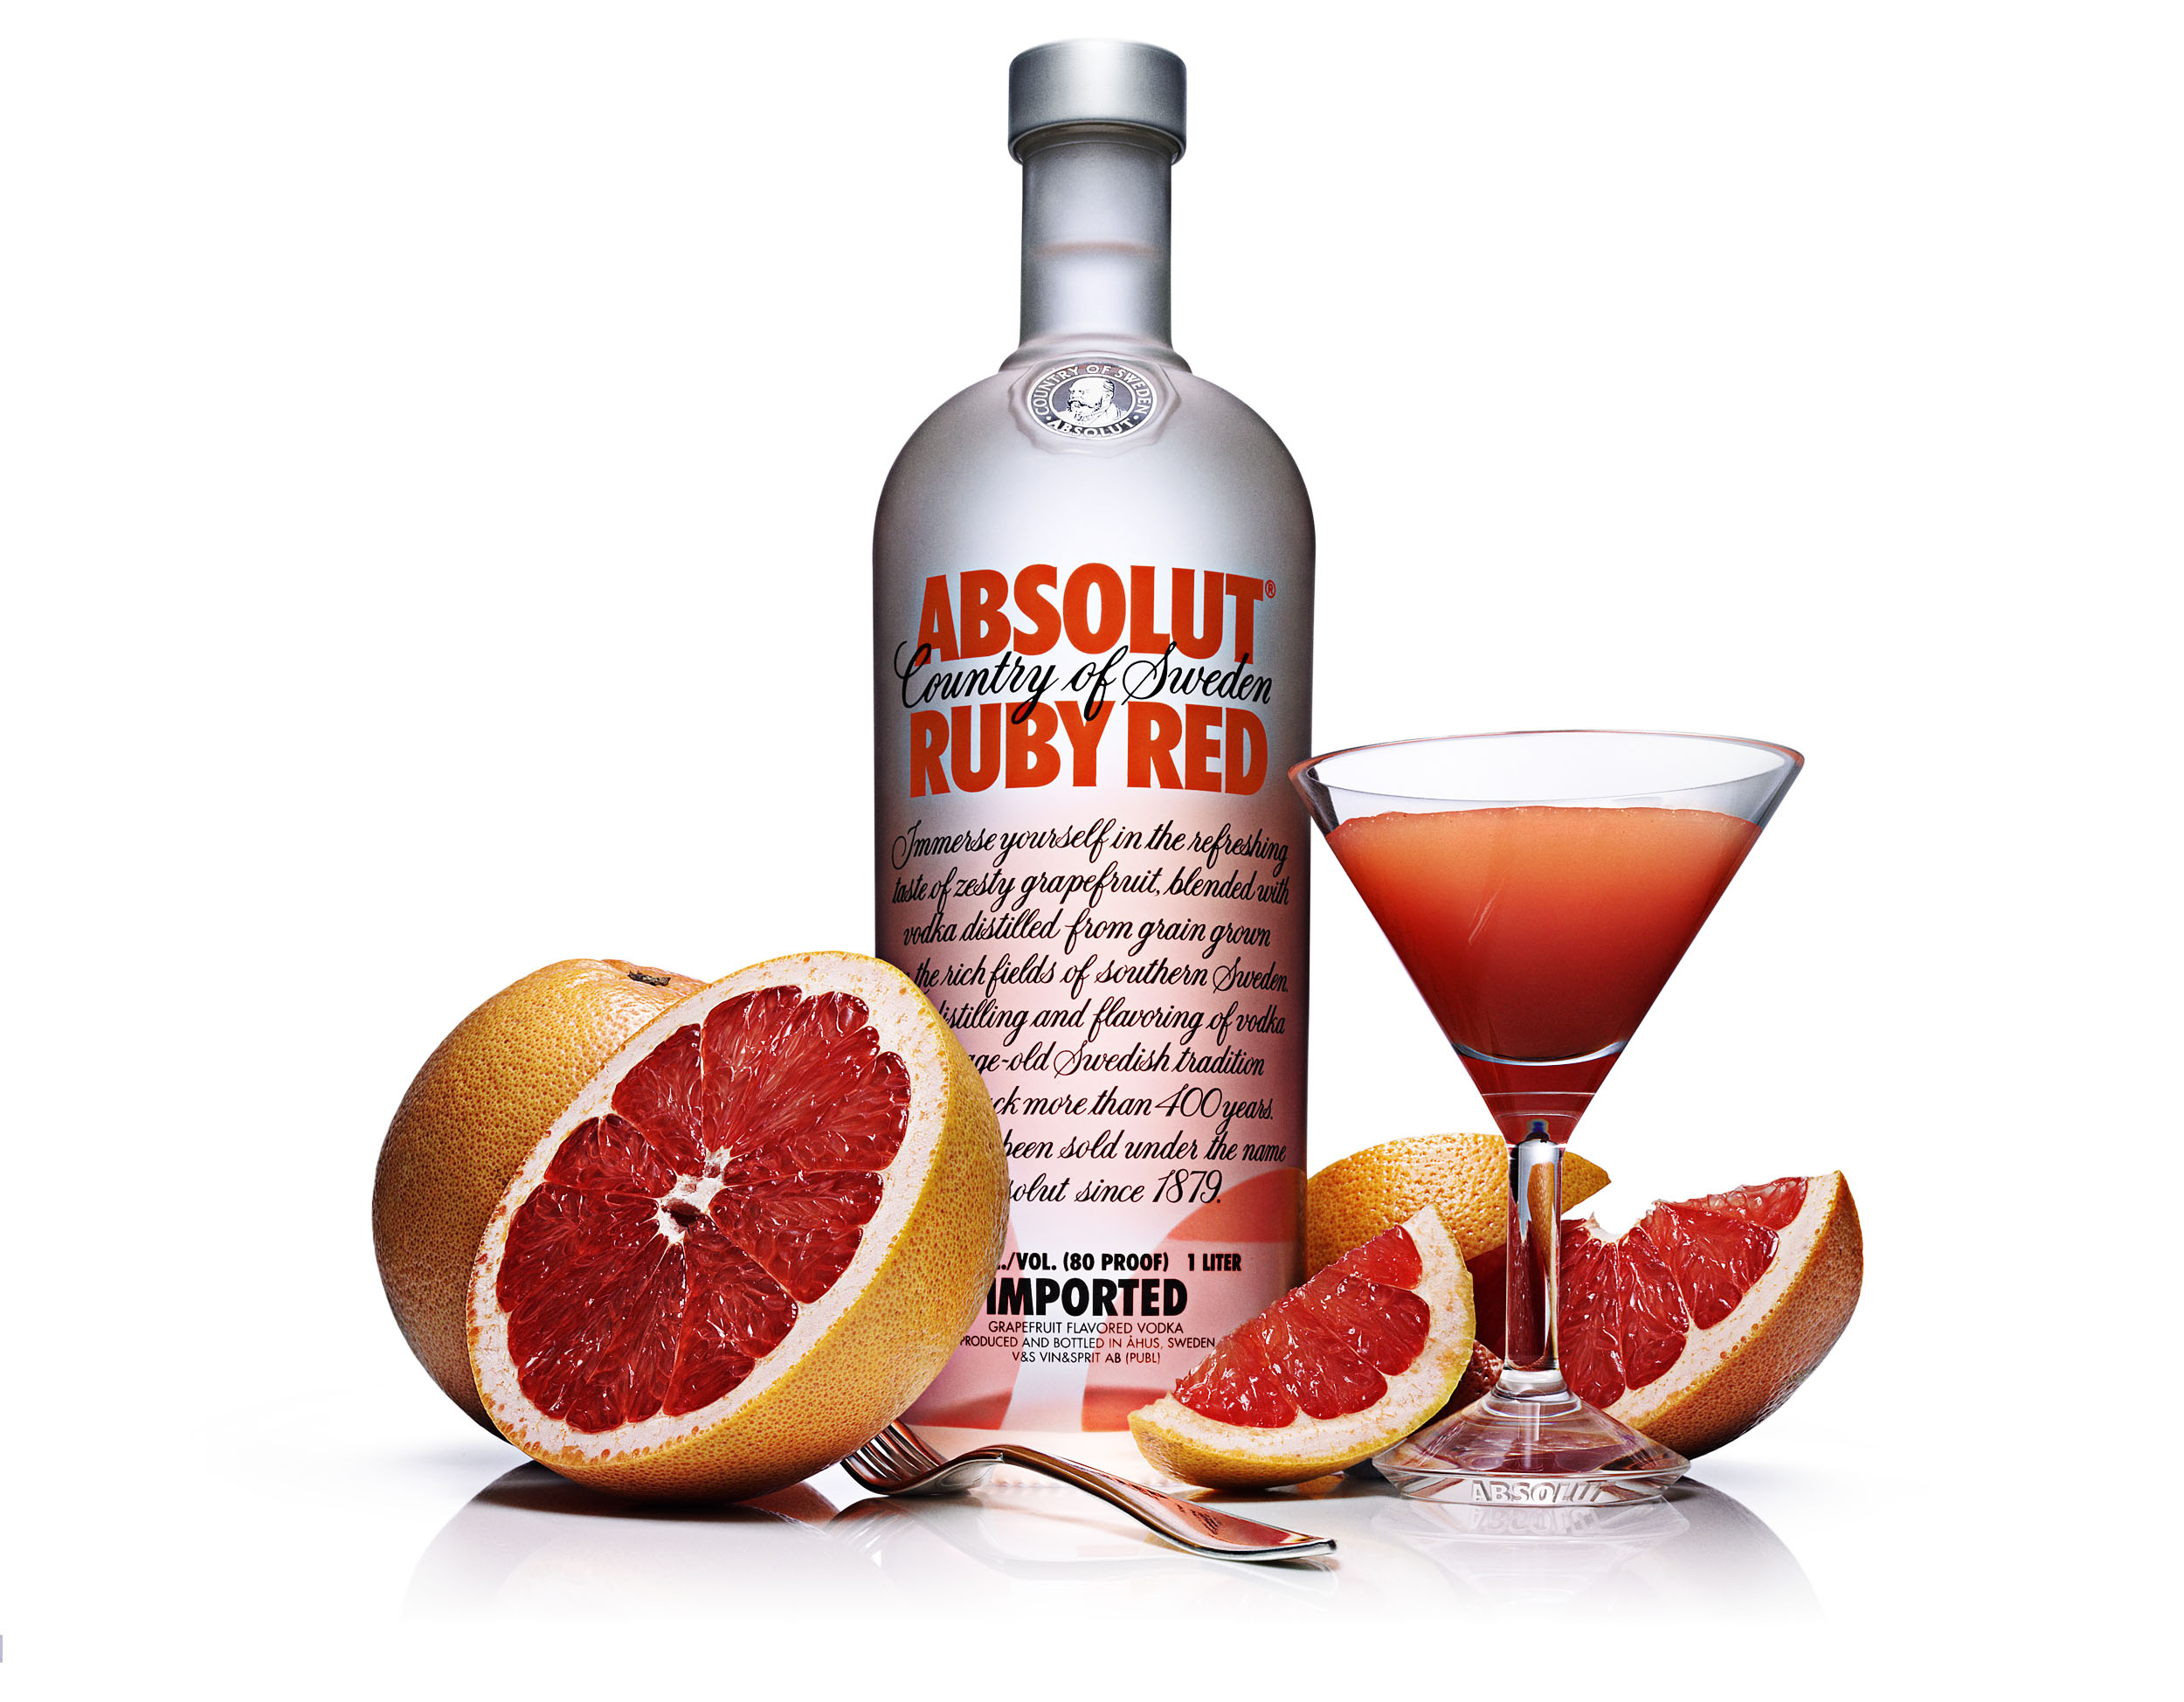 jensmortensen-absolut-vodka-b75380e9